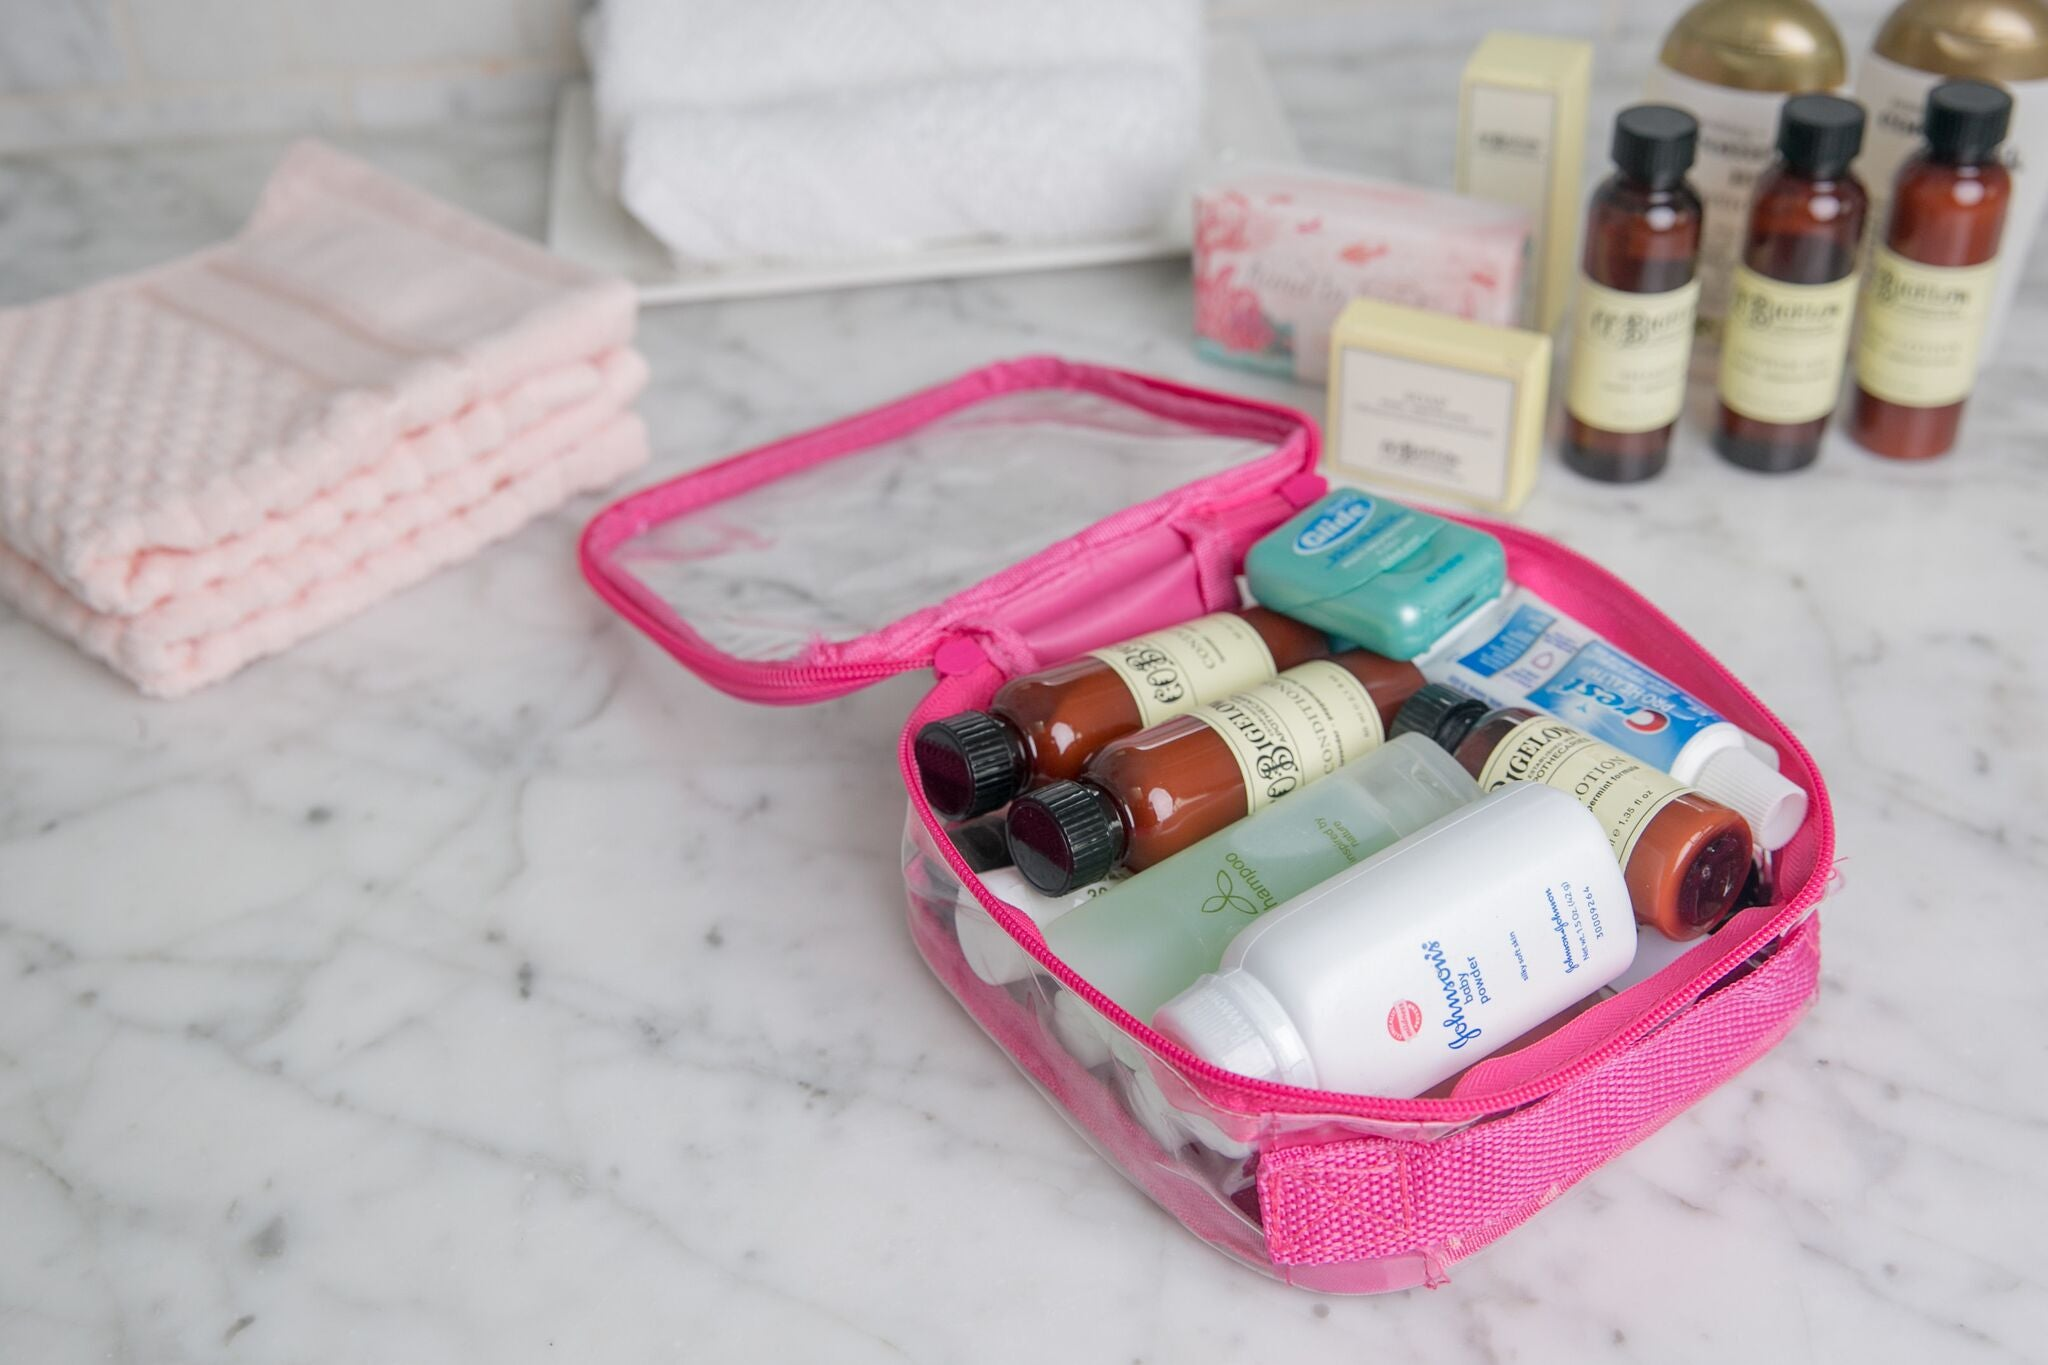 TSA approved clear toiletry bag